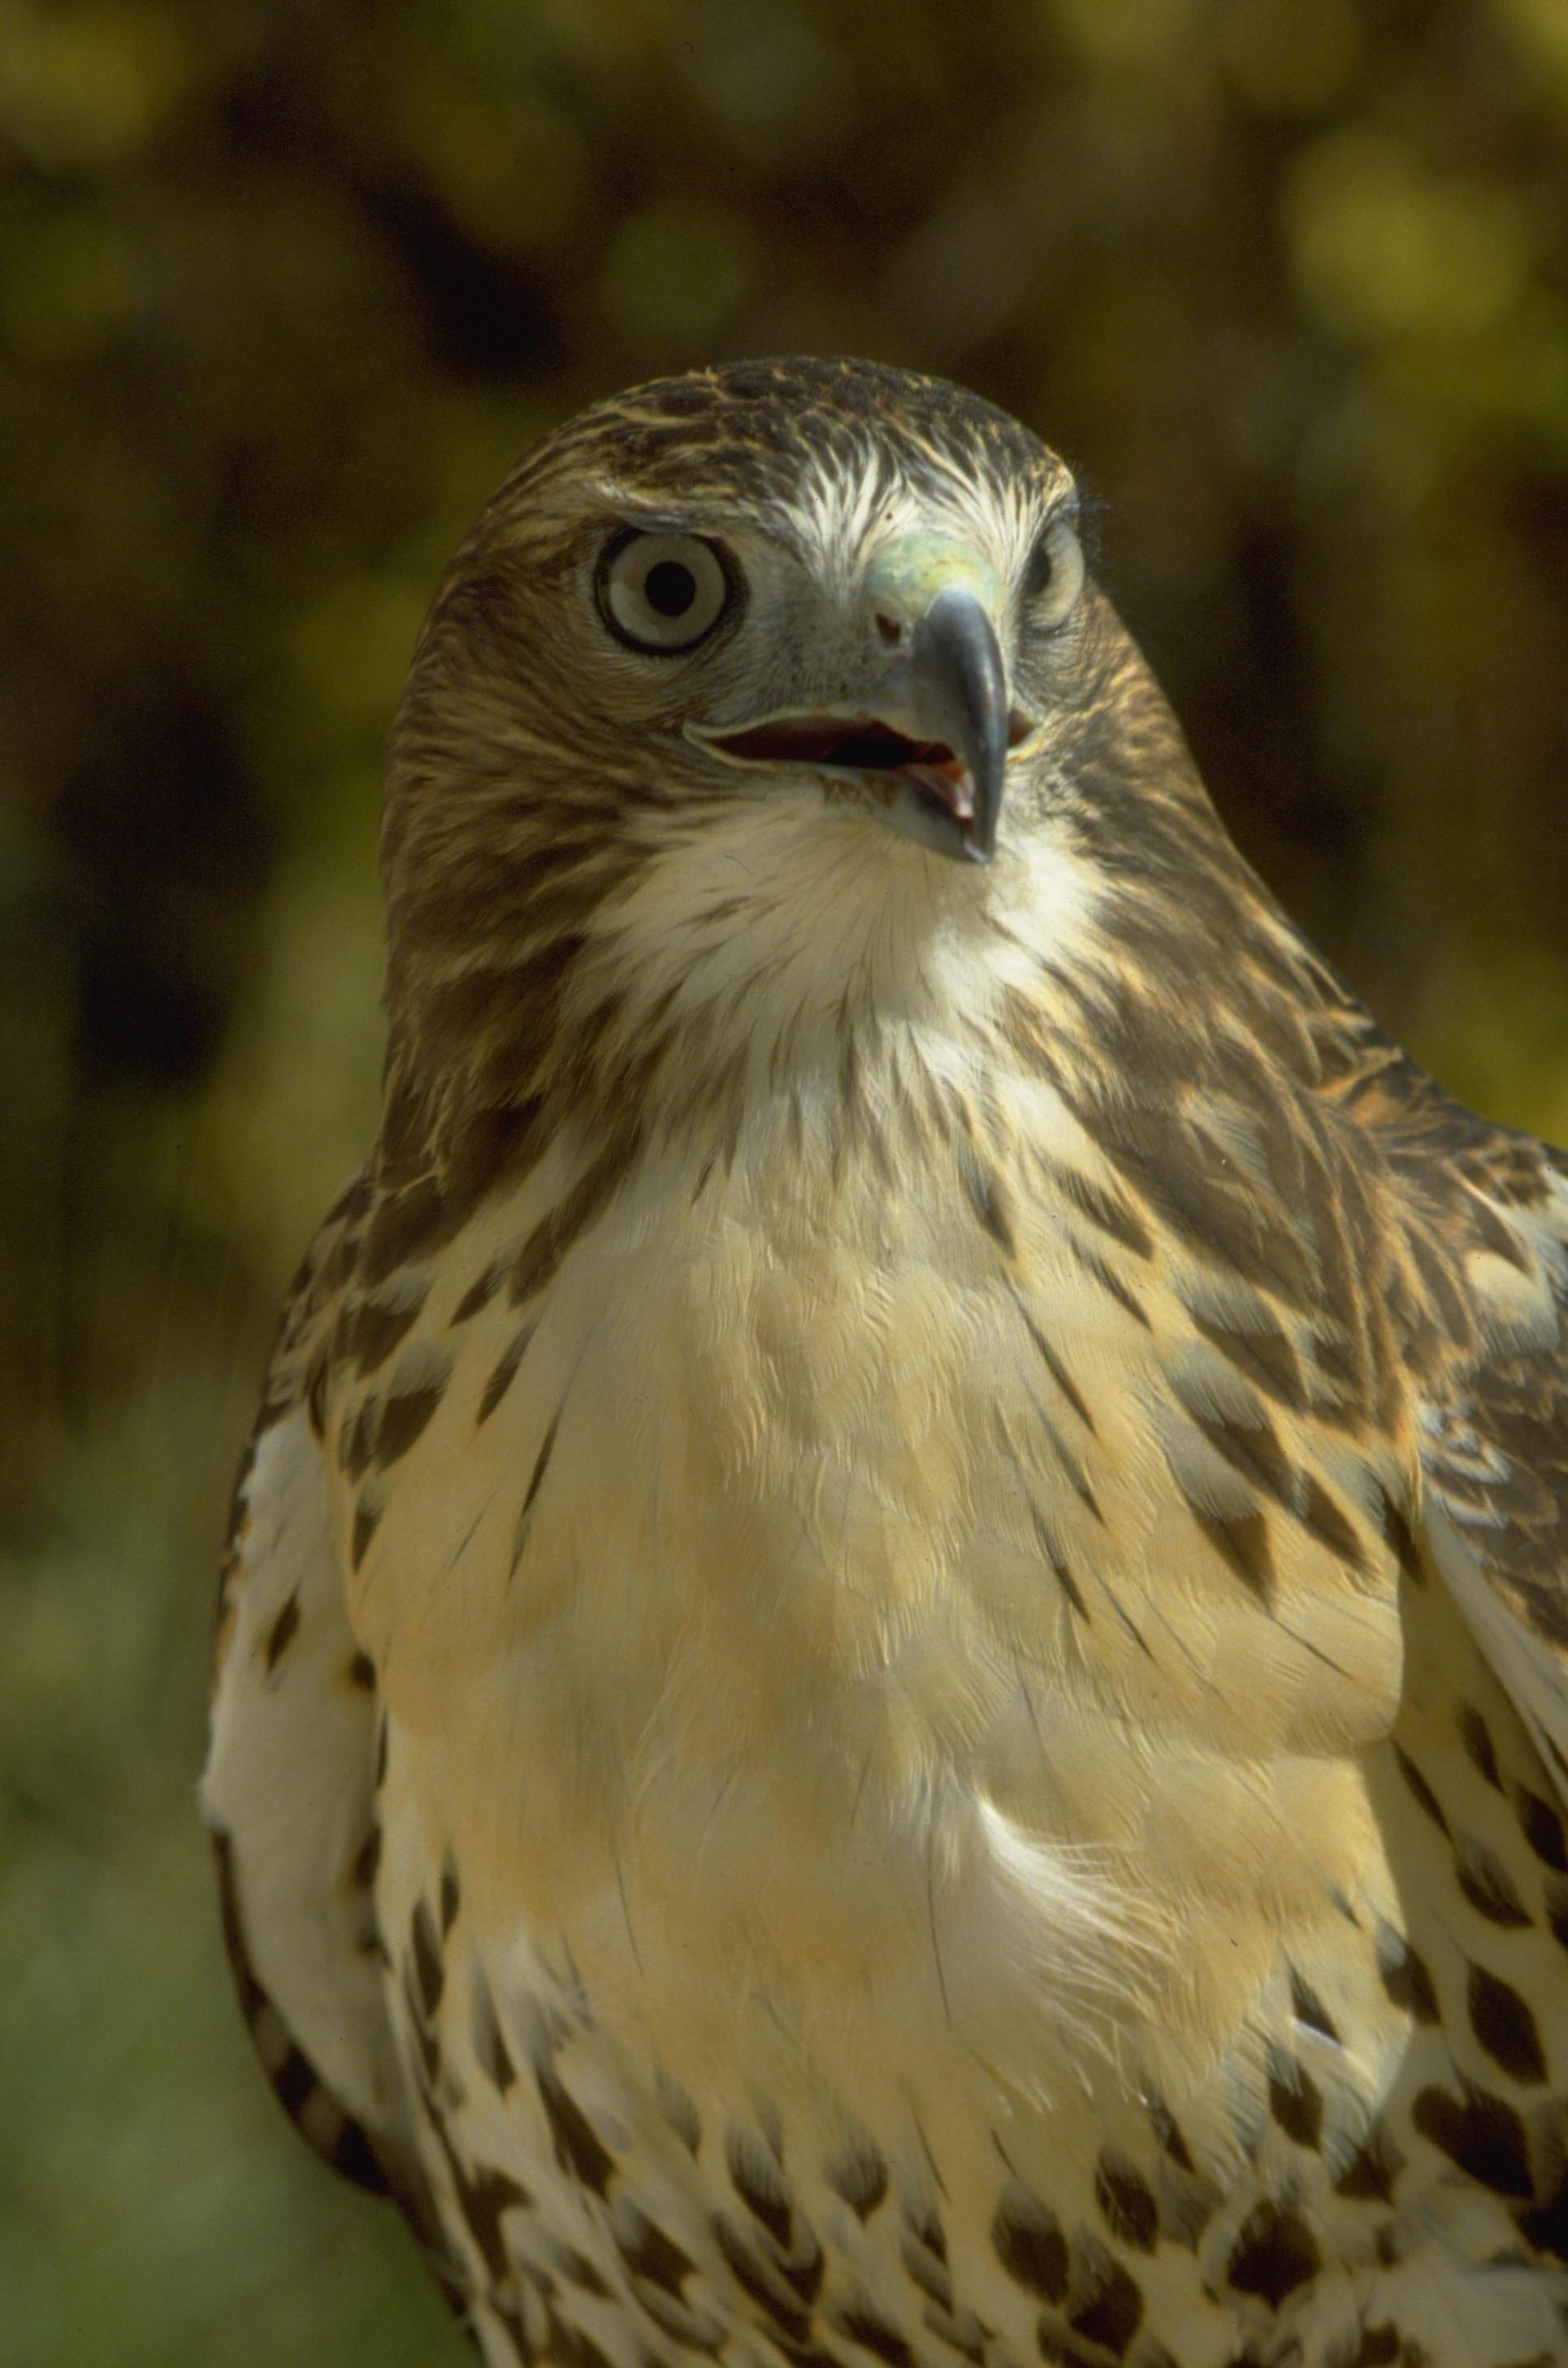 Temporary Closures For 2016 To Protect Nesting Raptors In